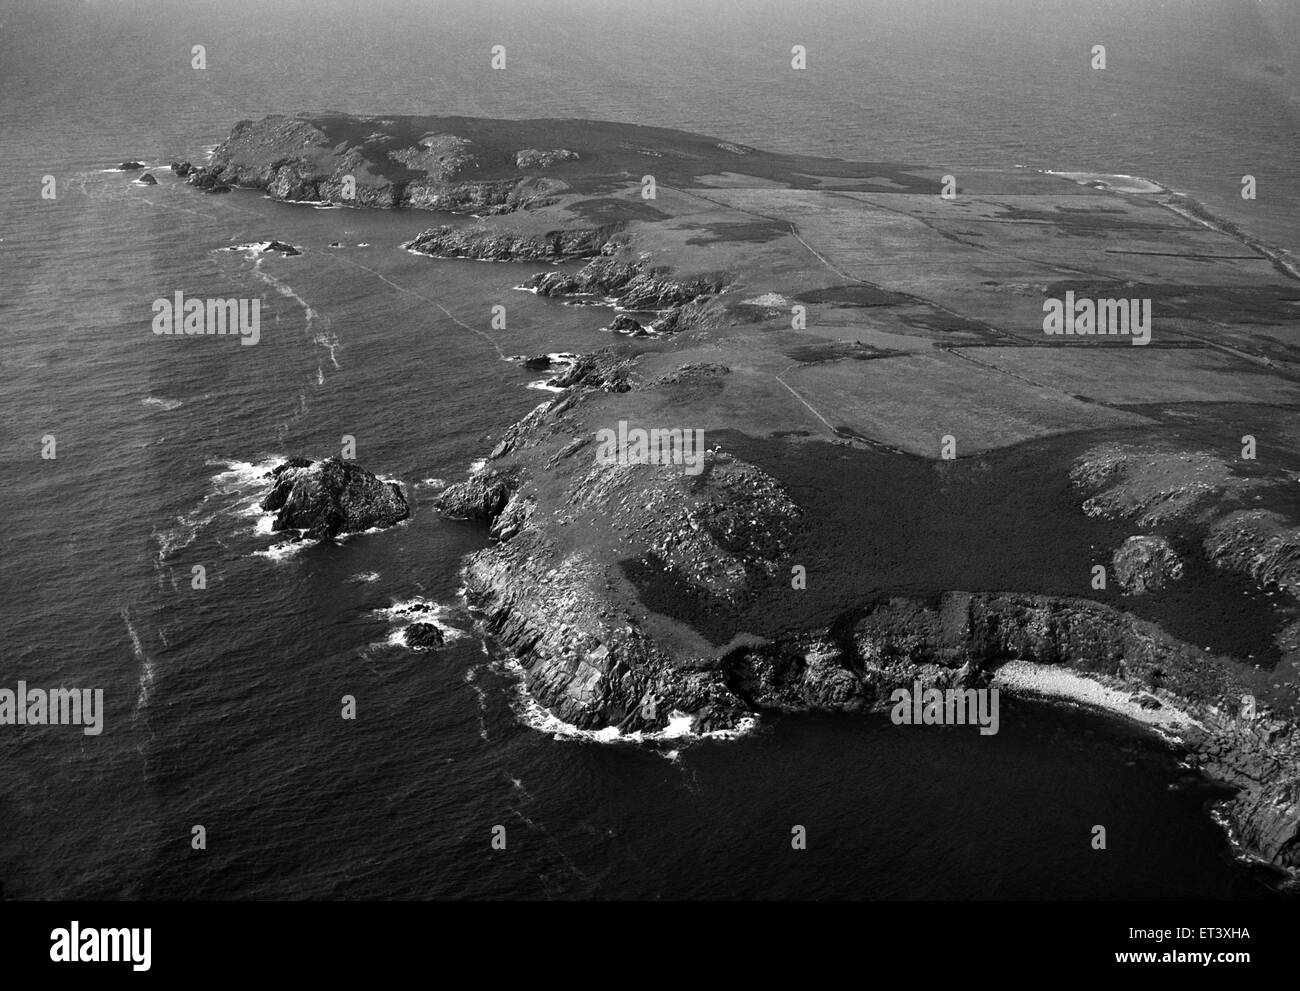 The Saltee Islands, 5 kilometres off the southern coast of County Wexford, Ireland. 24th August 1953. - Stock Image